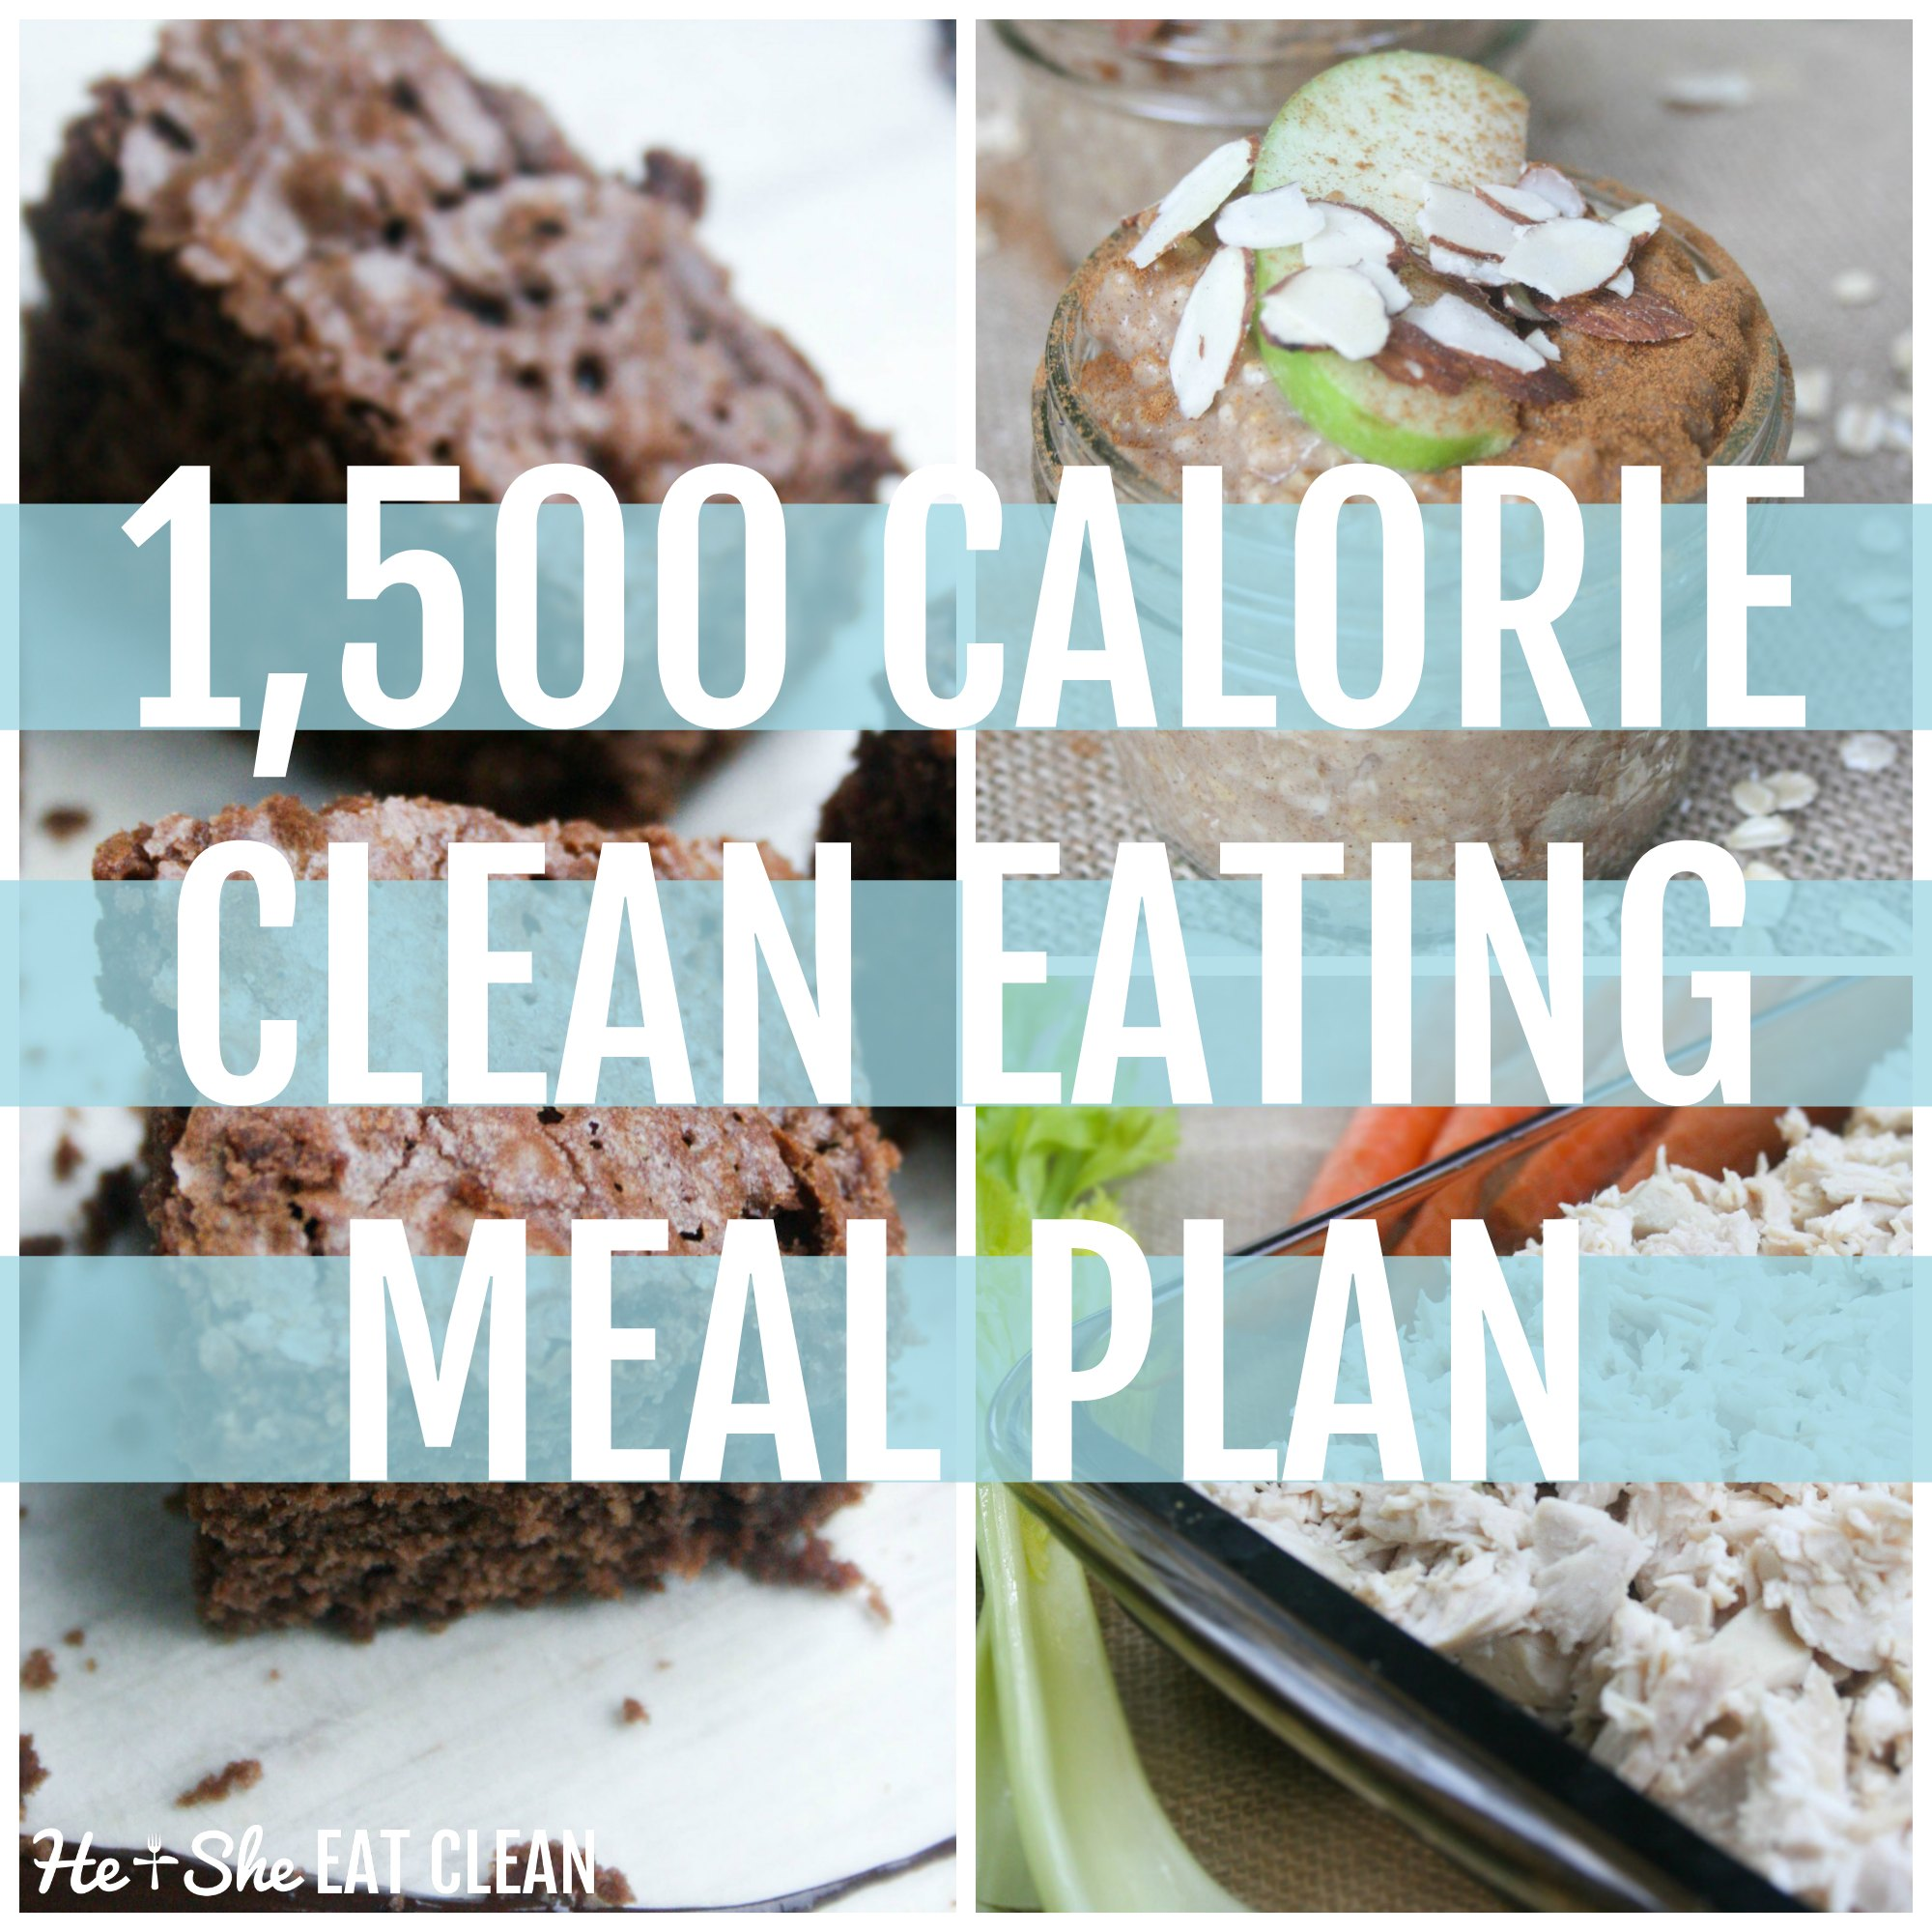 1,500 Calorie Clean Eating Meal Plan